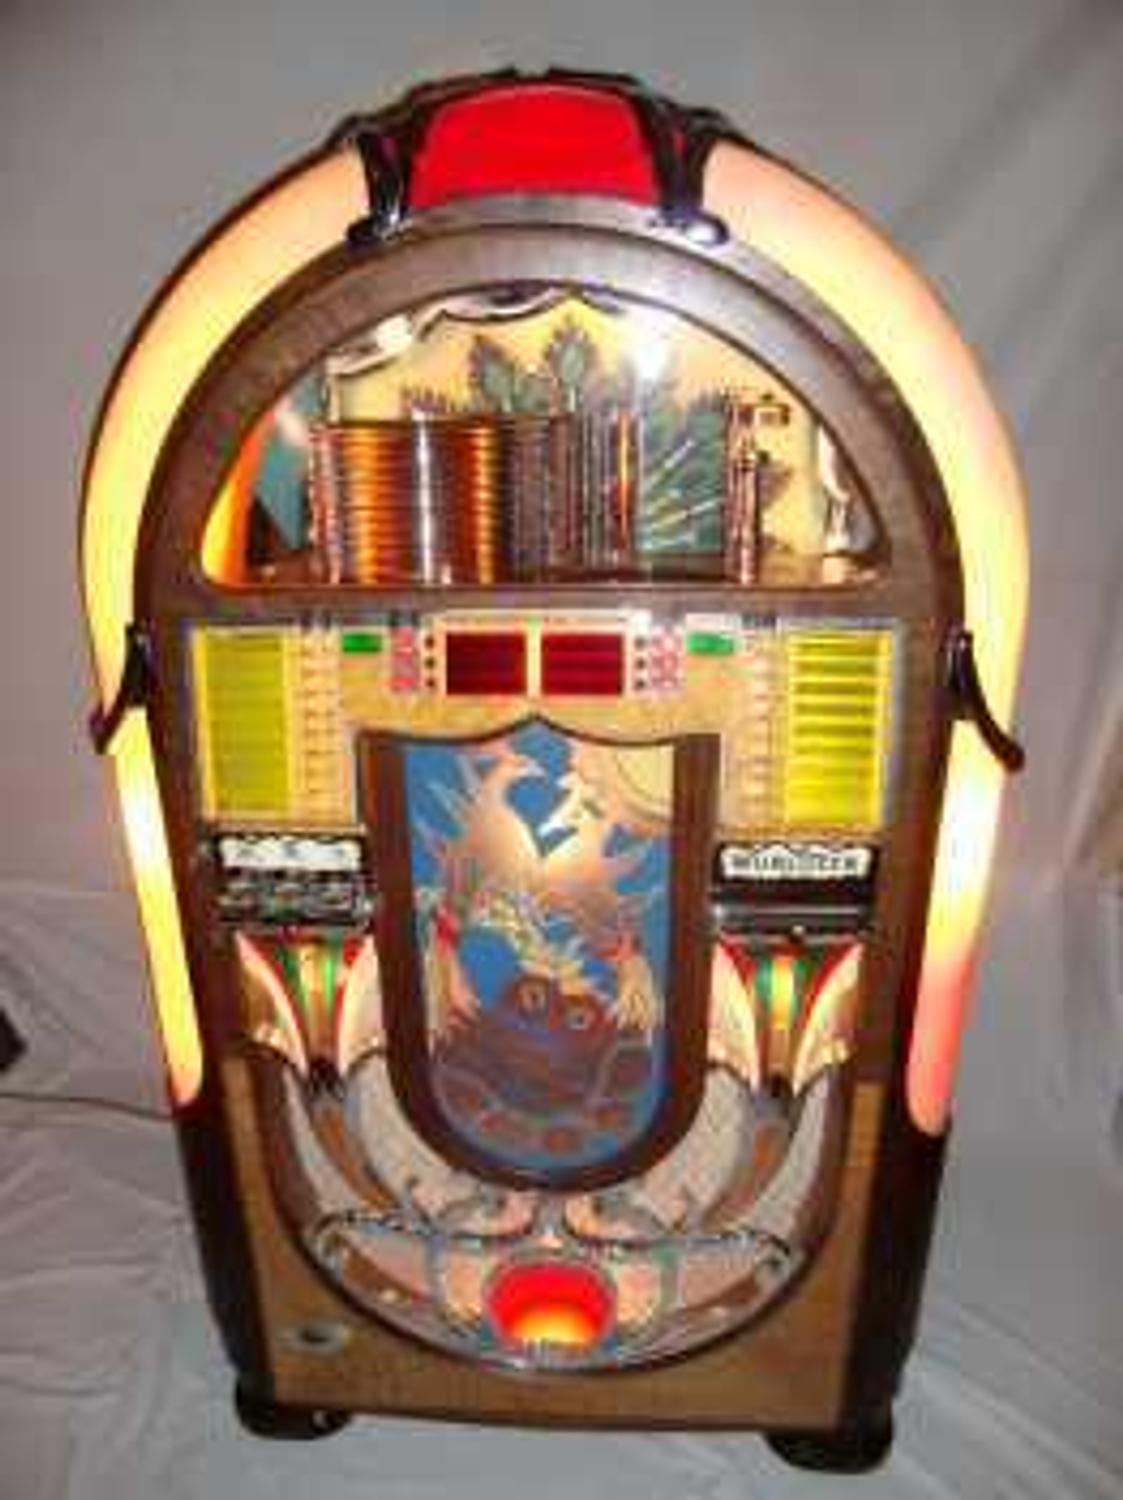 Line Art Jukebox : Early cars and motorcycles jukeboxes arcade games